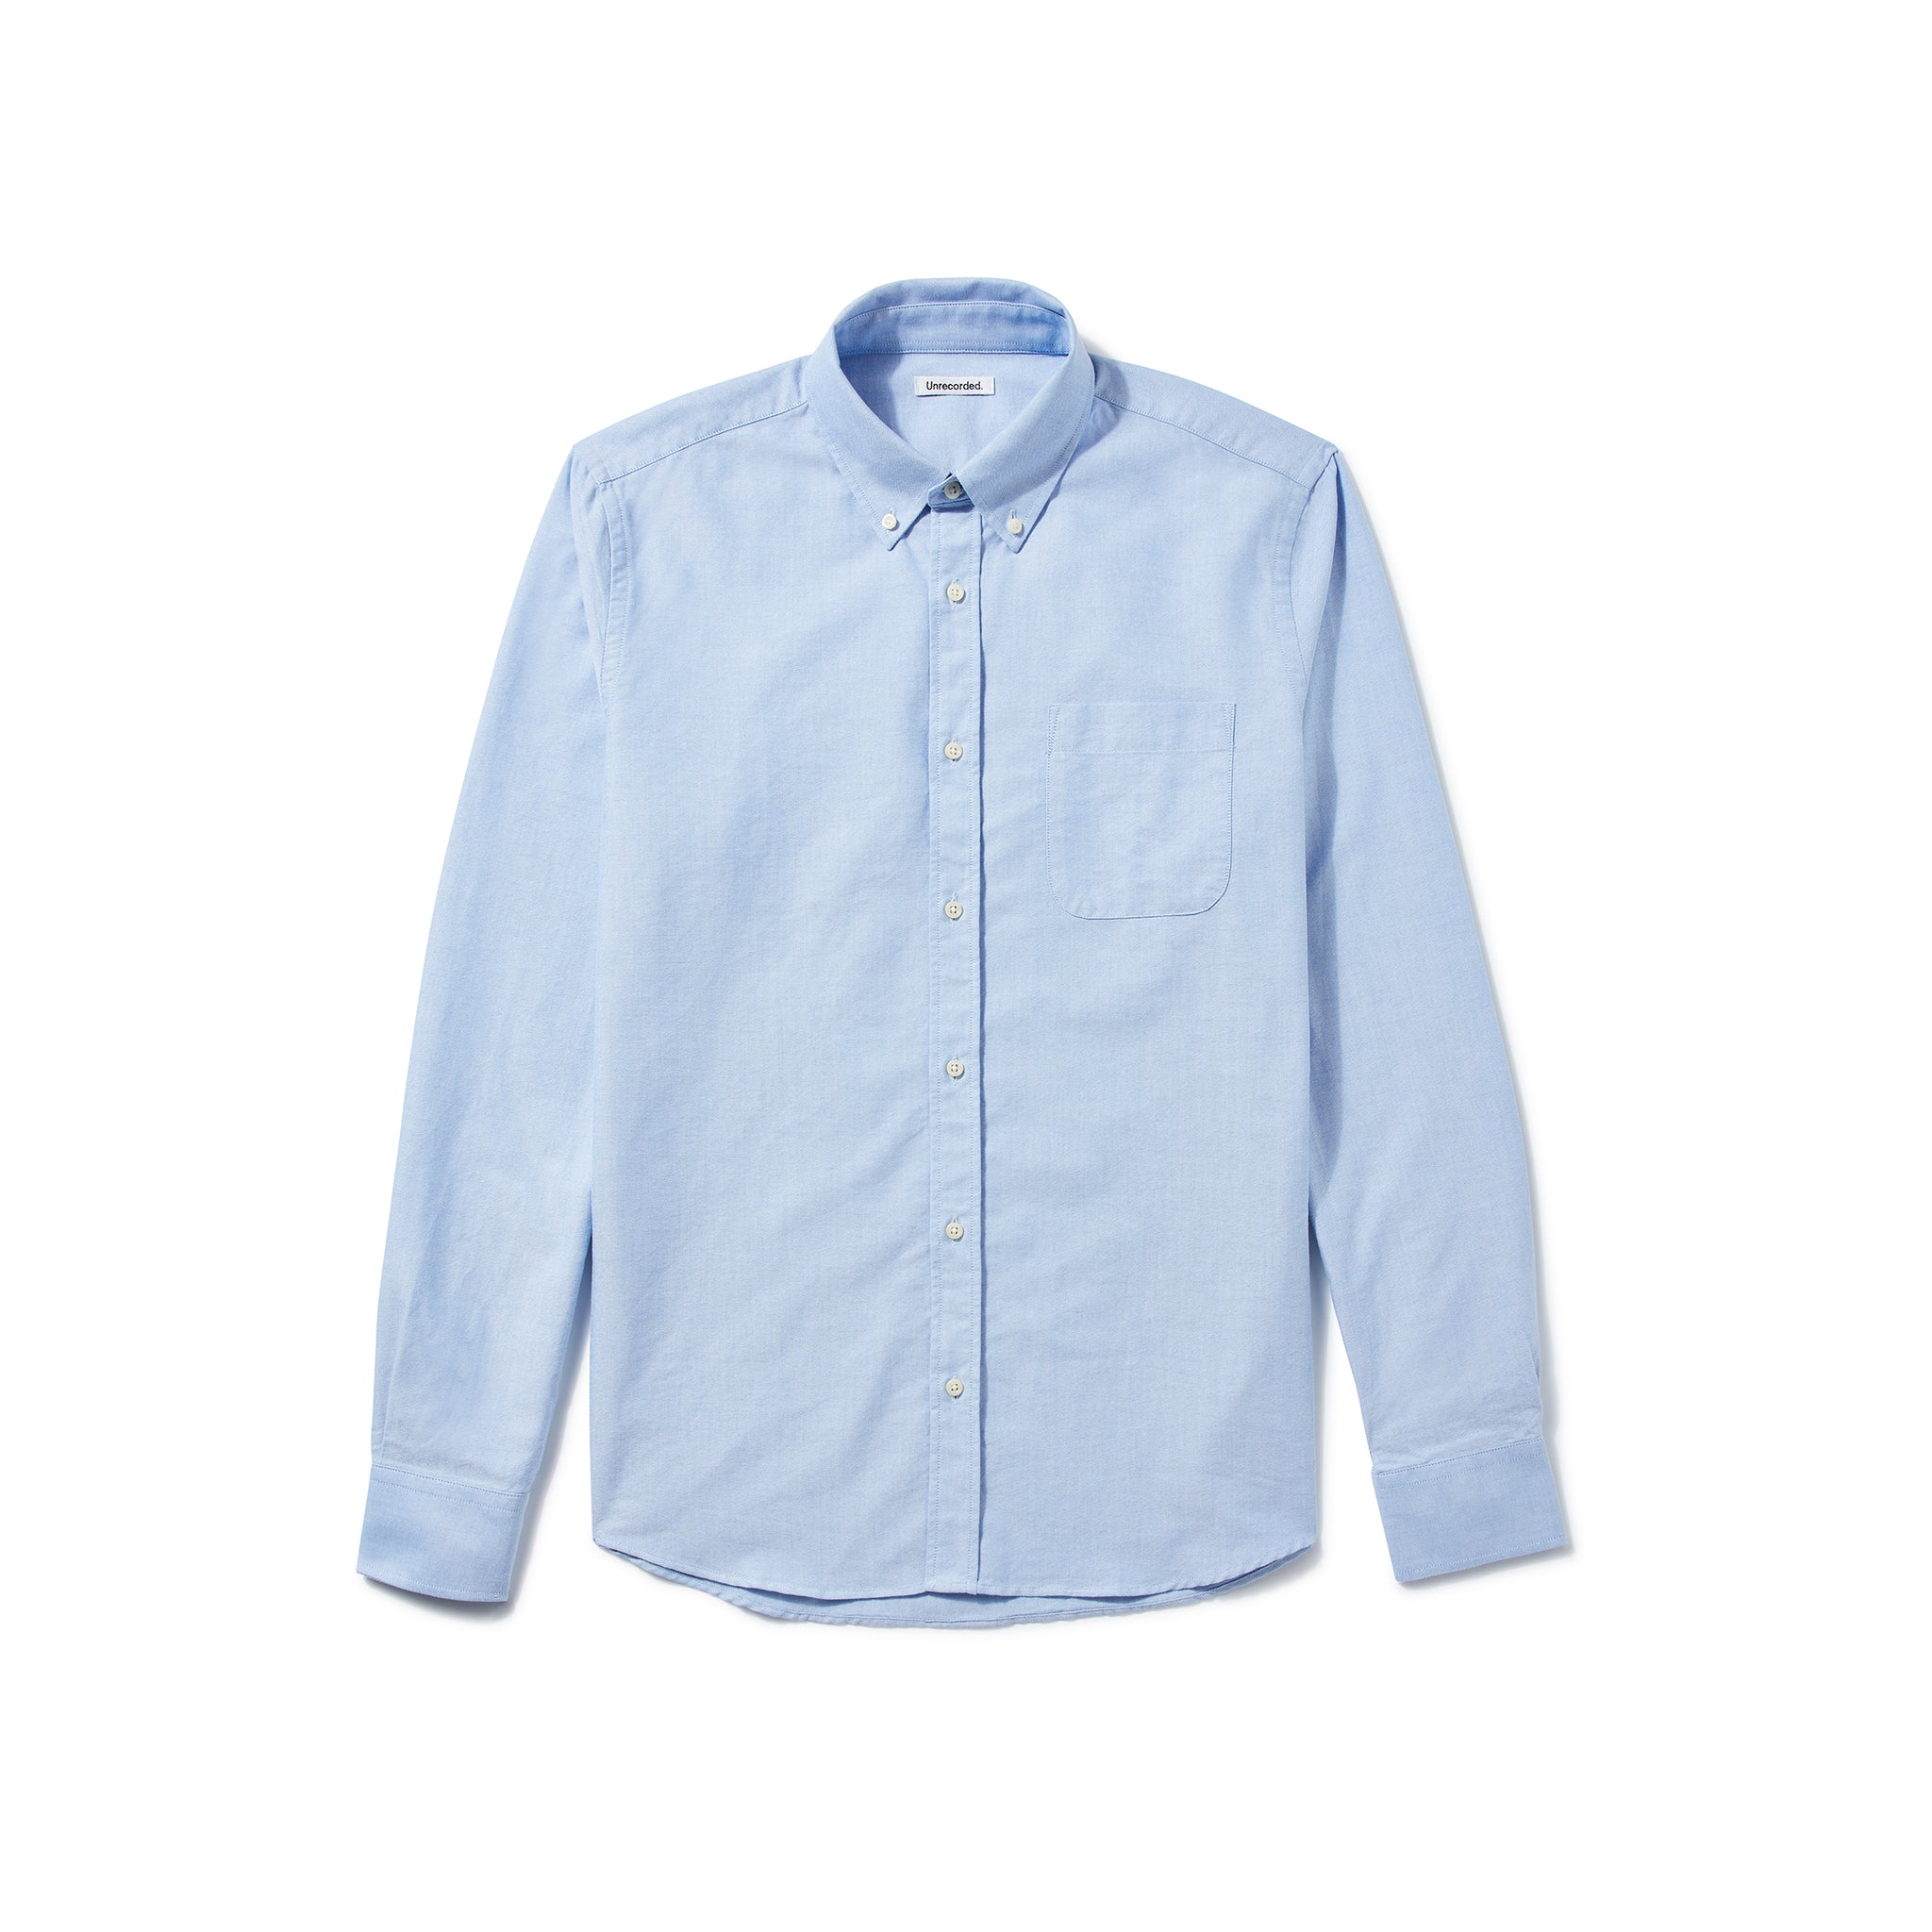 Oxford Shirt in Light Blue made from Organic Cotton - Alternate